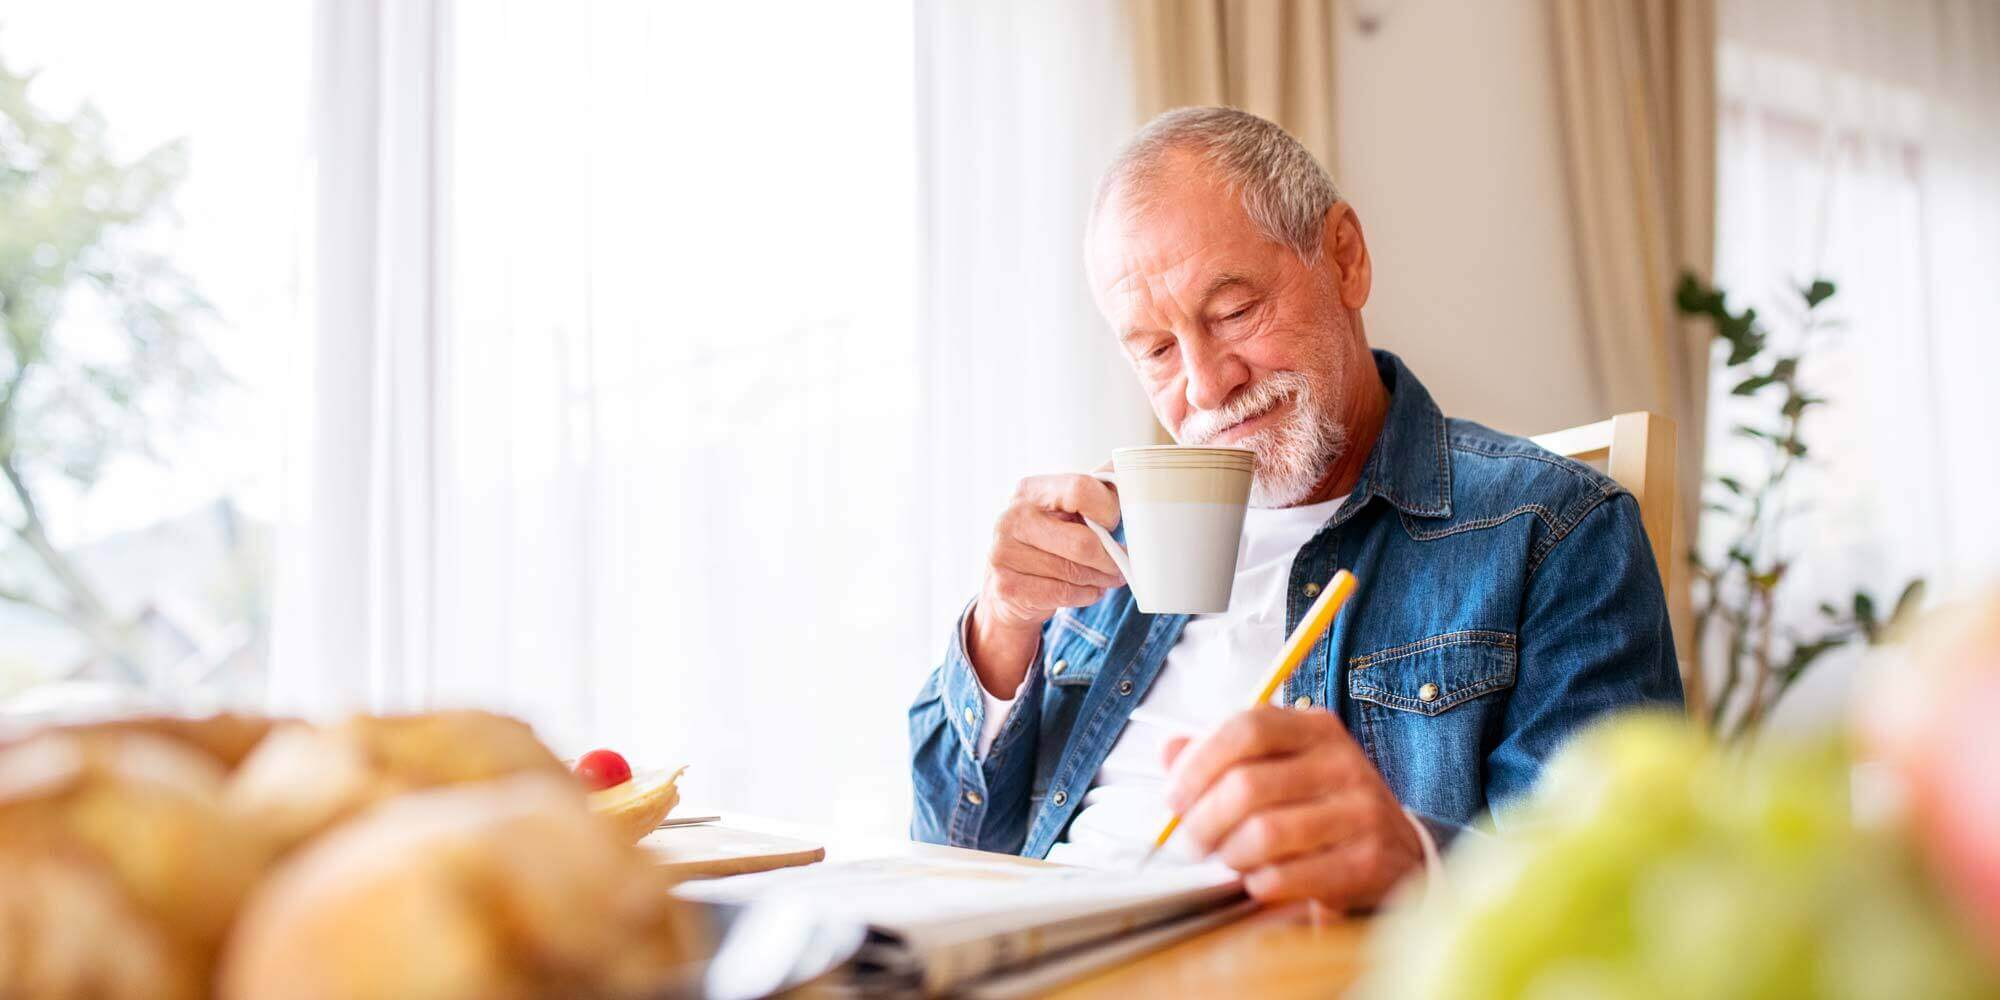 Resident enjoying a cup of coffee and a crossword puzzle.